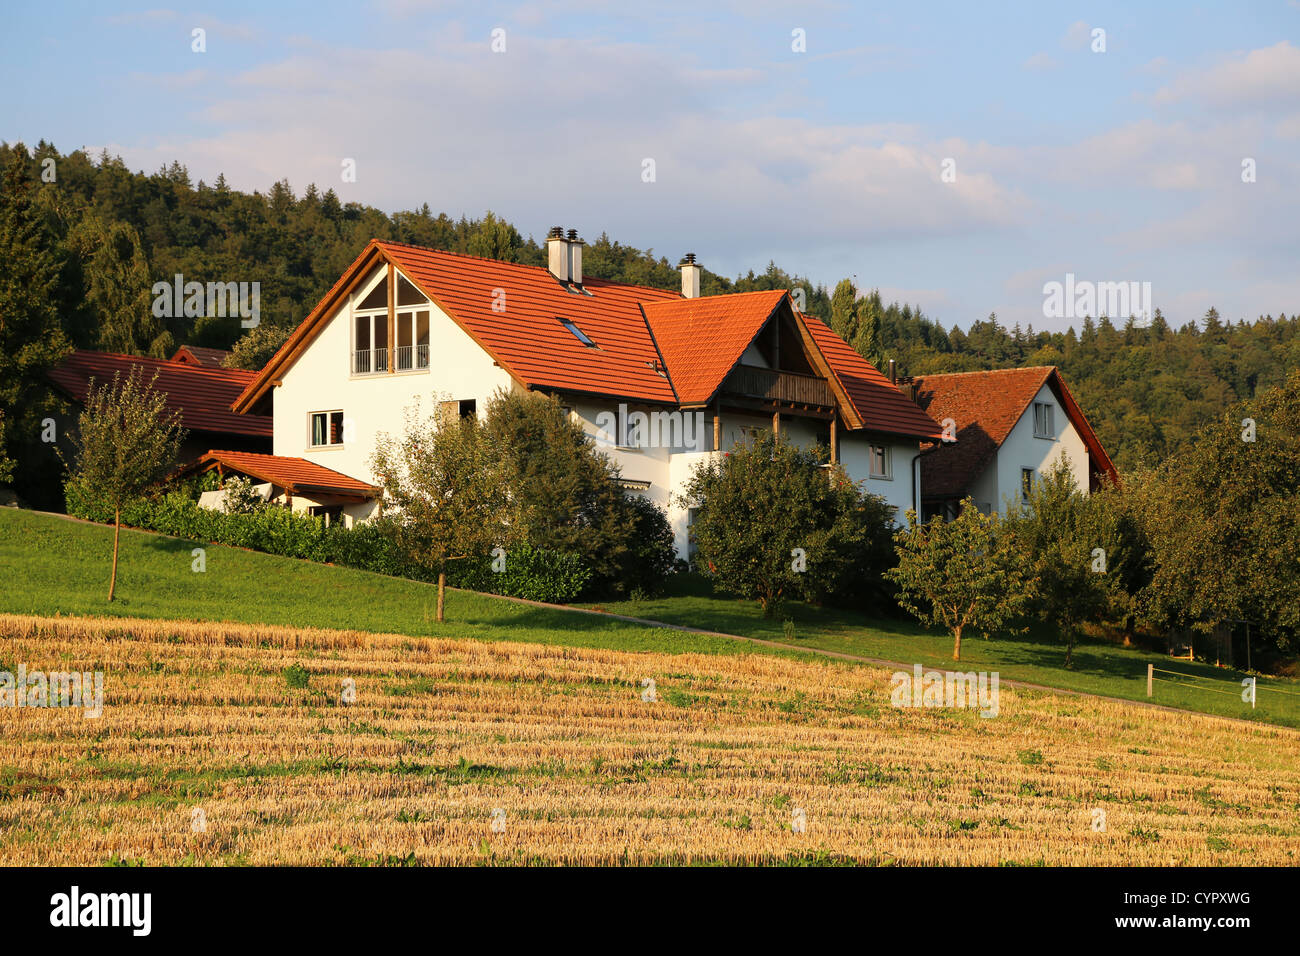 Houses in Switzerland surrounded by fresh green trees Stock Photo